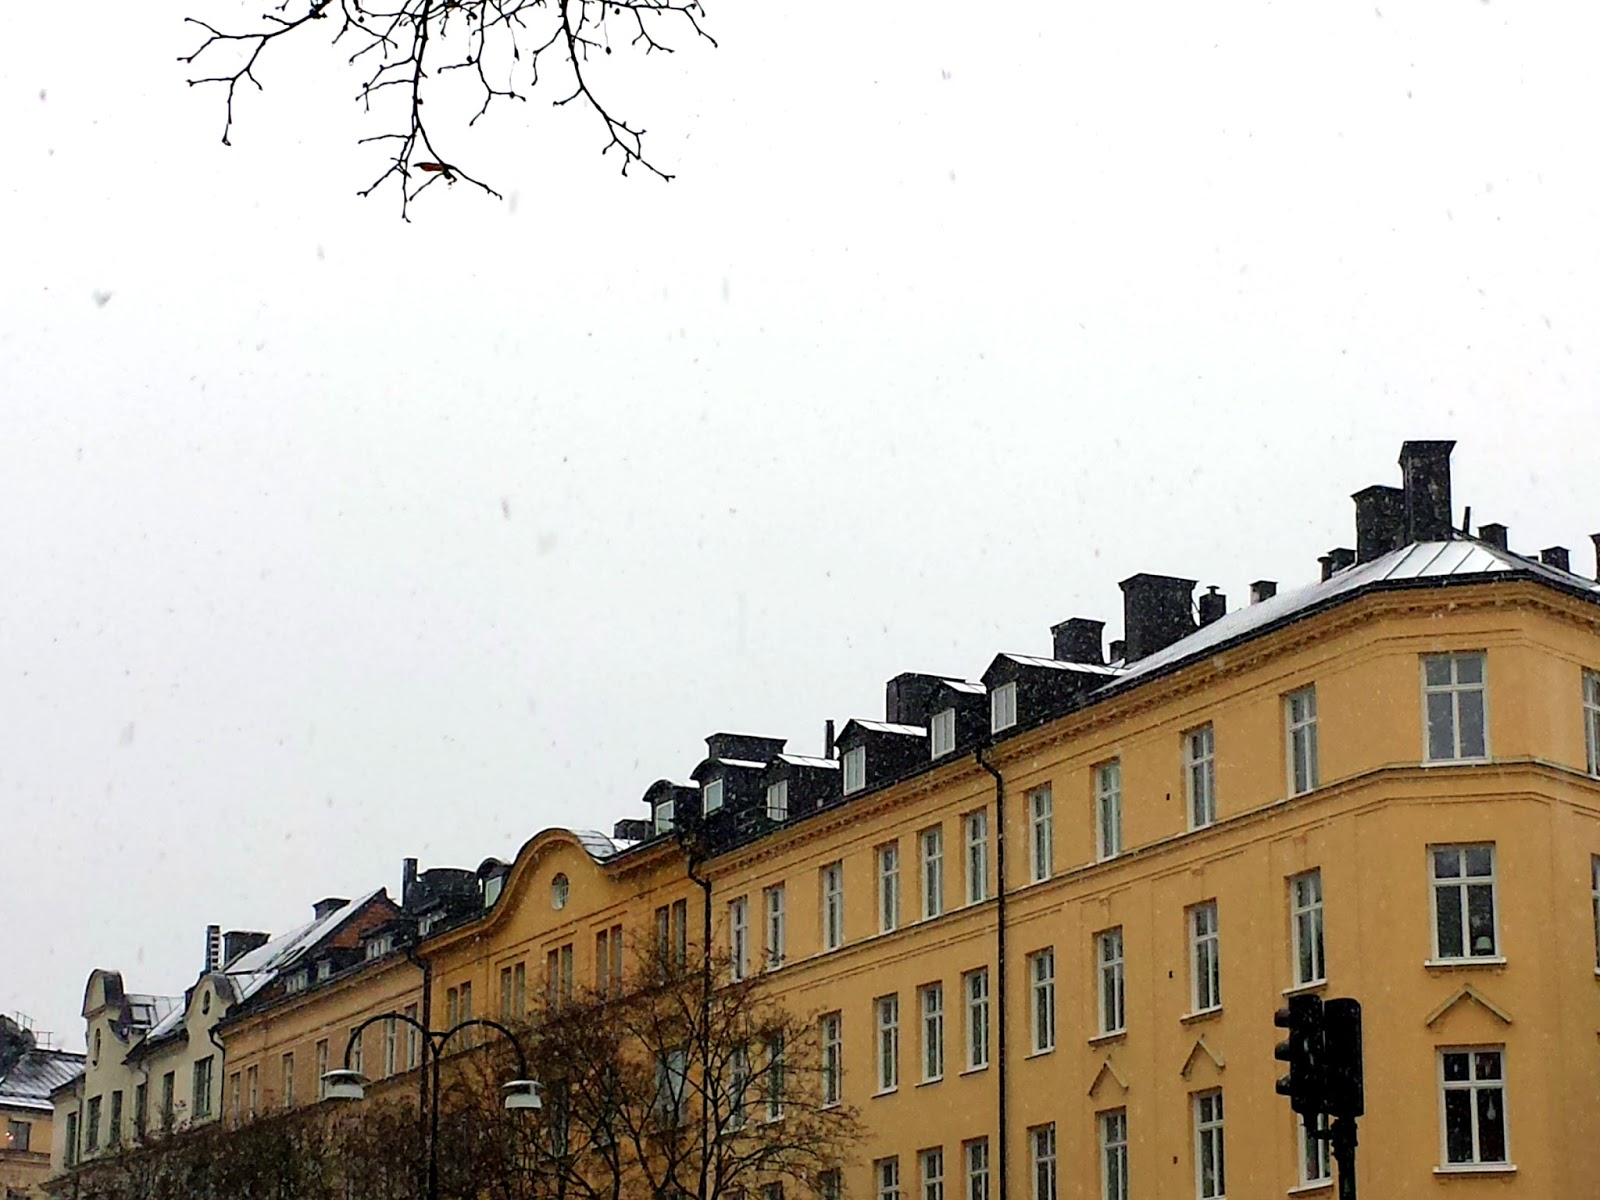 Snowfall in Vasastan, Stockholm  |  The first snowfall on afeathery*nest  |  http://afeatherynest.com